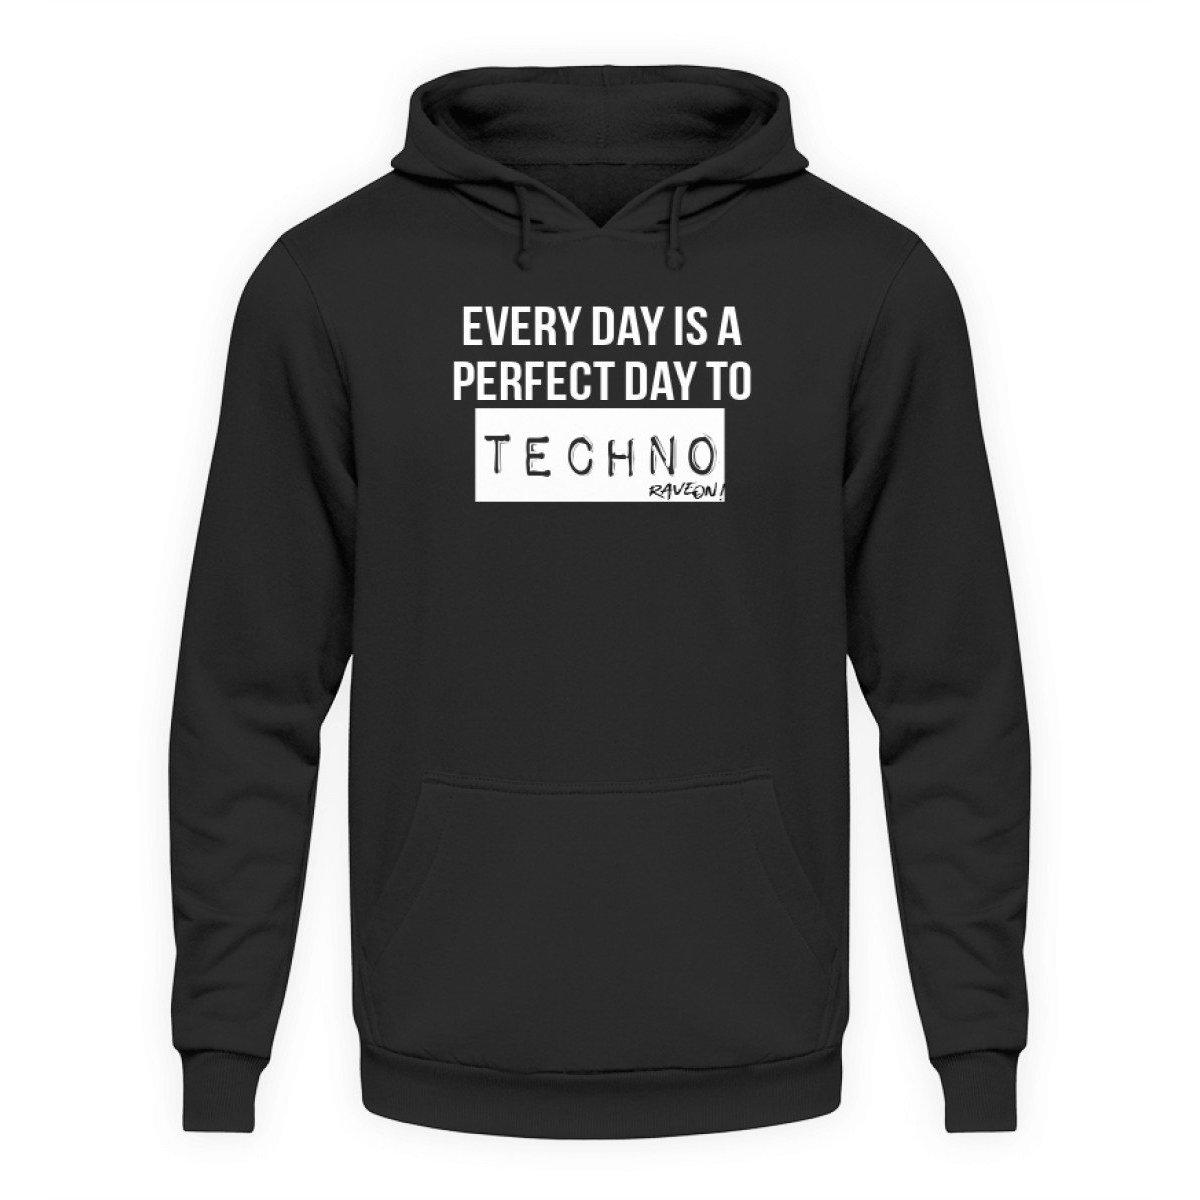 Everyday is a perfect day B. - Rave On!® - Unisex Kapuzenpullover Hoodie Unisex Hoodie L - Rave On!® der Club & Techno Szene Shop für Coole Junge Mode Streetwear Style & Fashion Outfits + Sexy Festival 420 Stuff